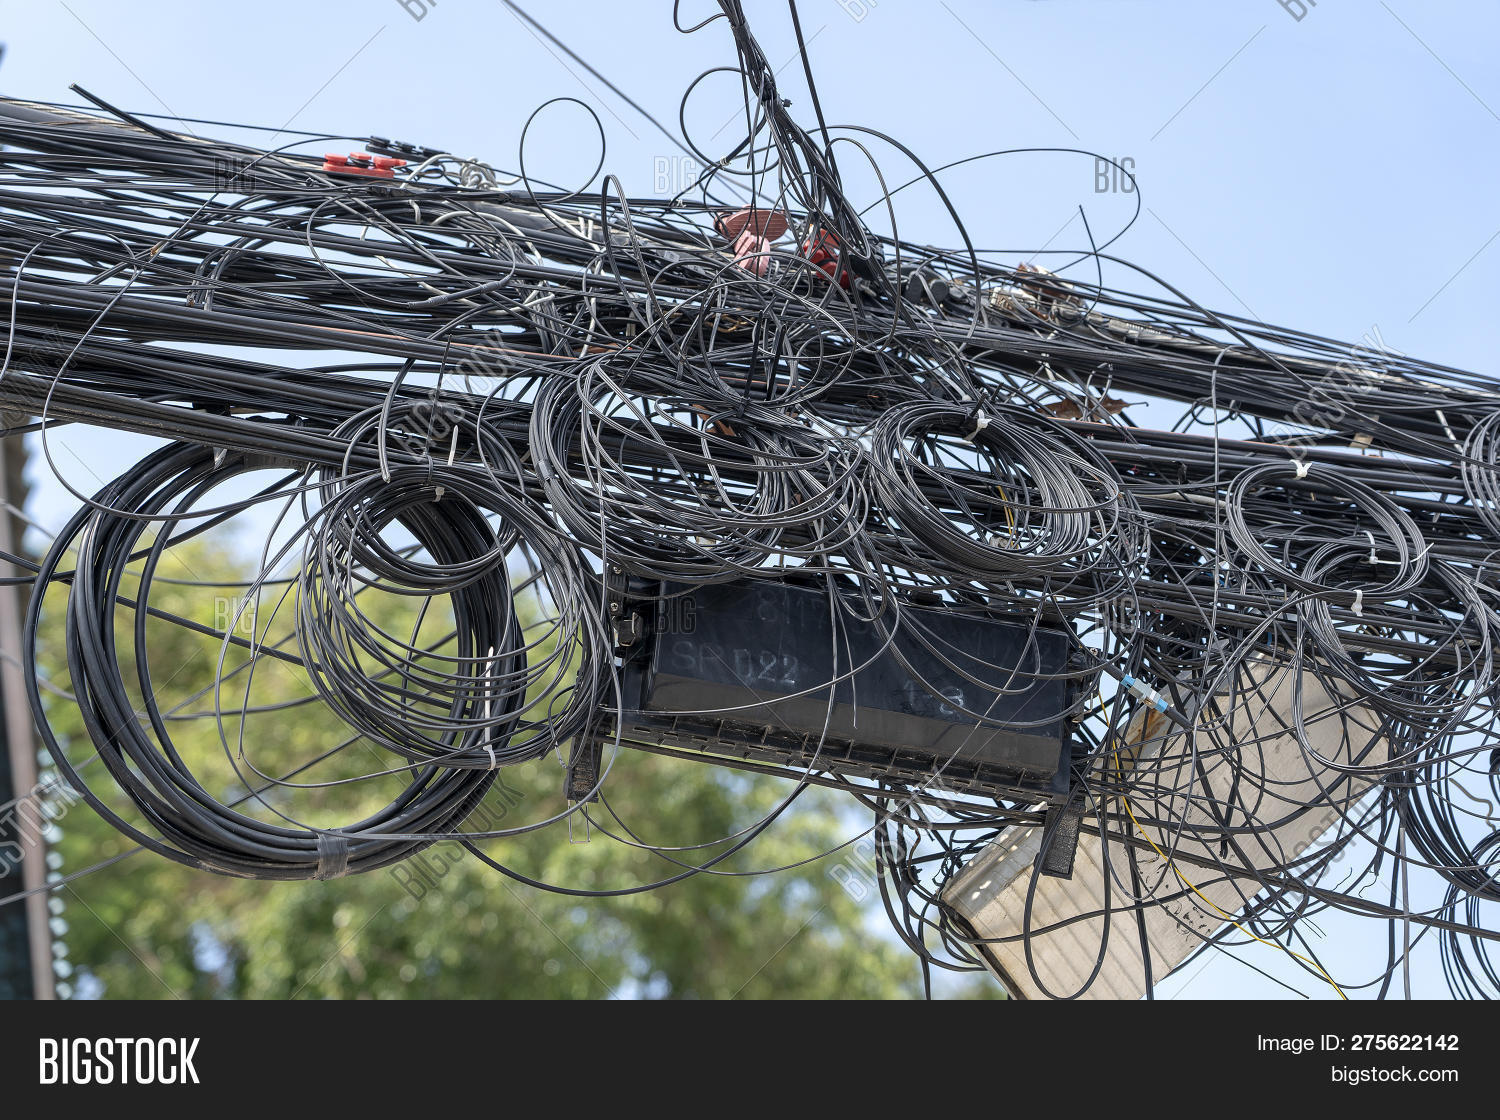 hight resolution of chaos of cables and wires on an electric pole many electrical cable wire and telephone line on electricity post thailand